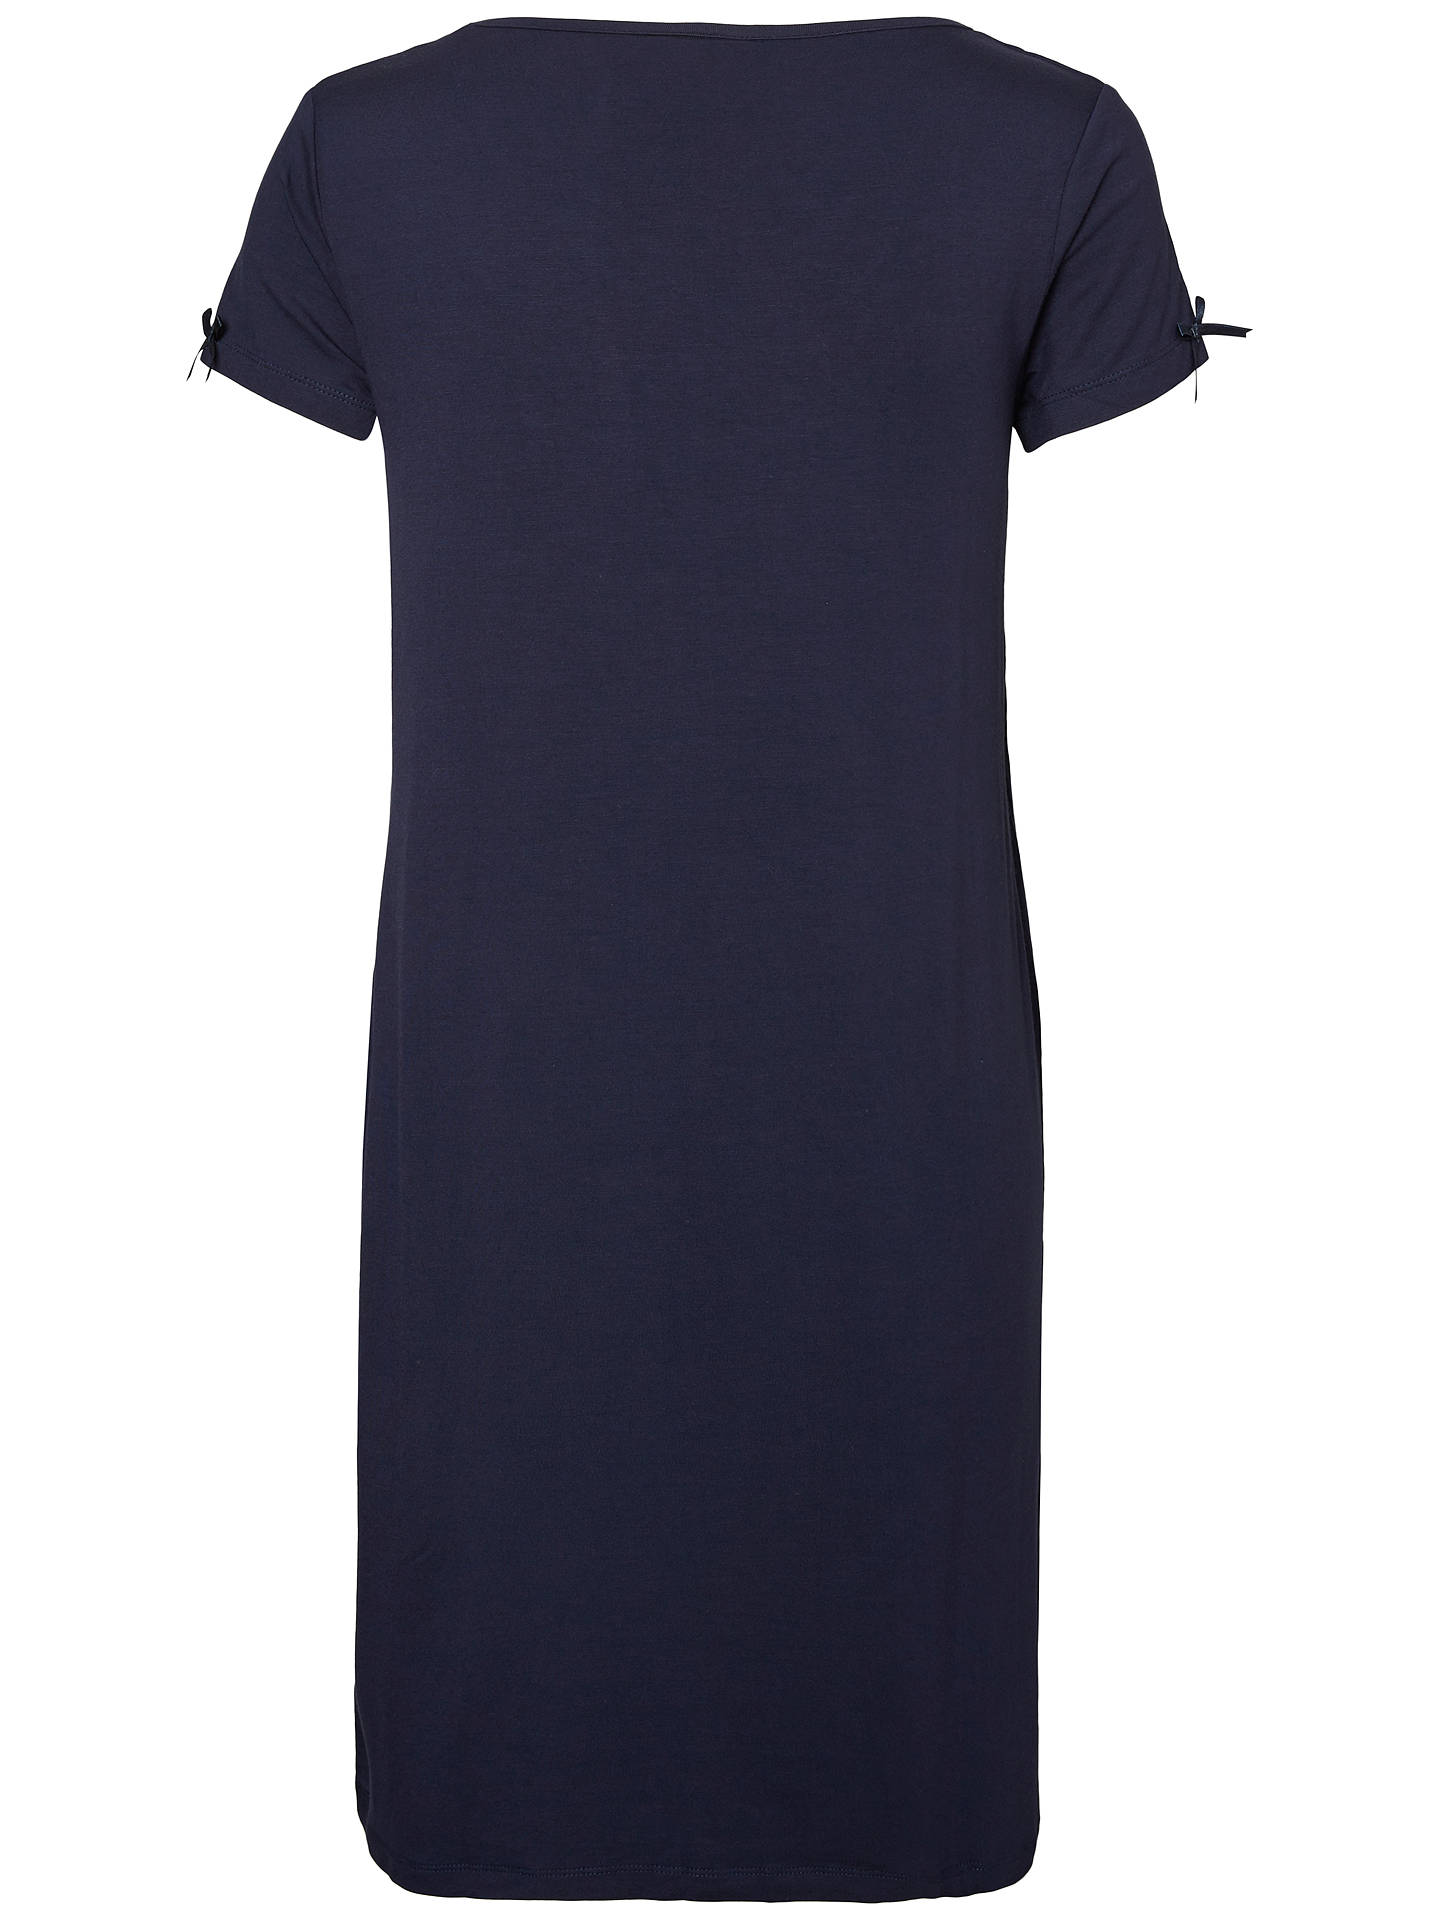 BuyMamalicious Petrine Nell Maternity Nursing Nightdress, Navy, S Online at johnlewis.com